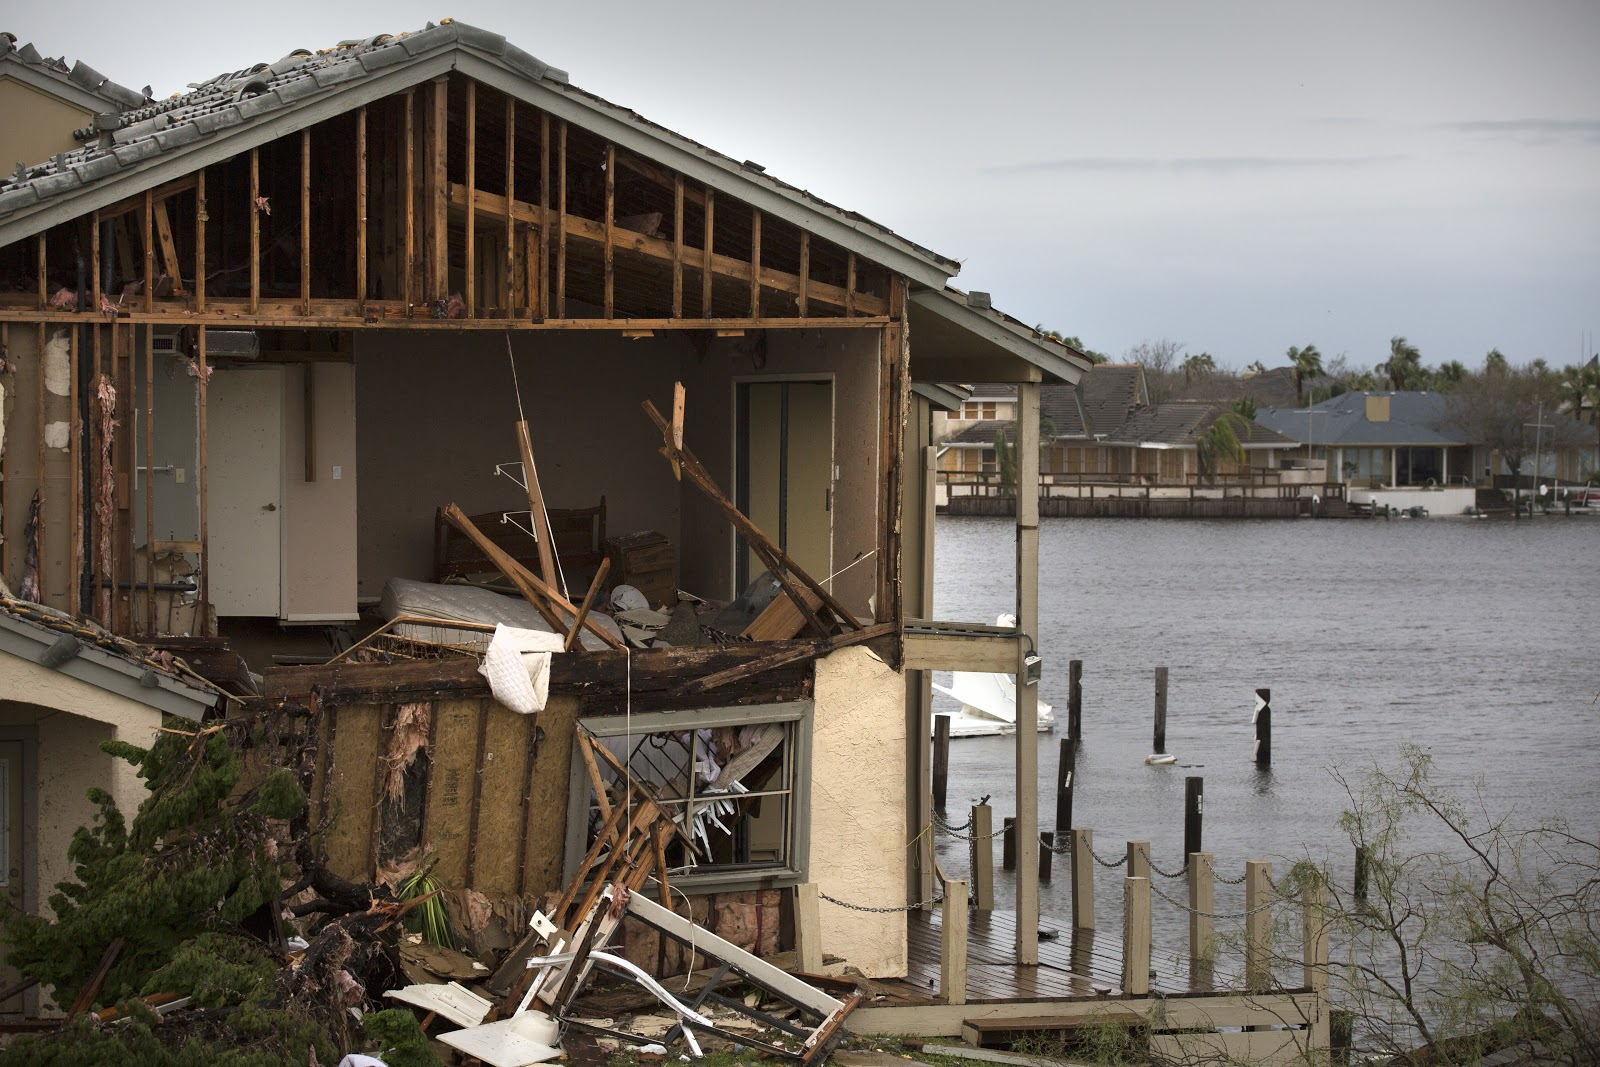 the shell of a house that has been destroyed by flooding